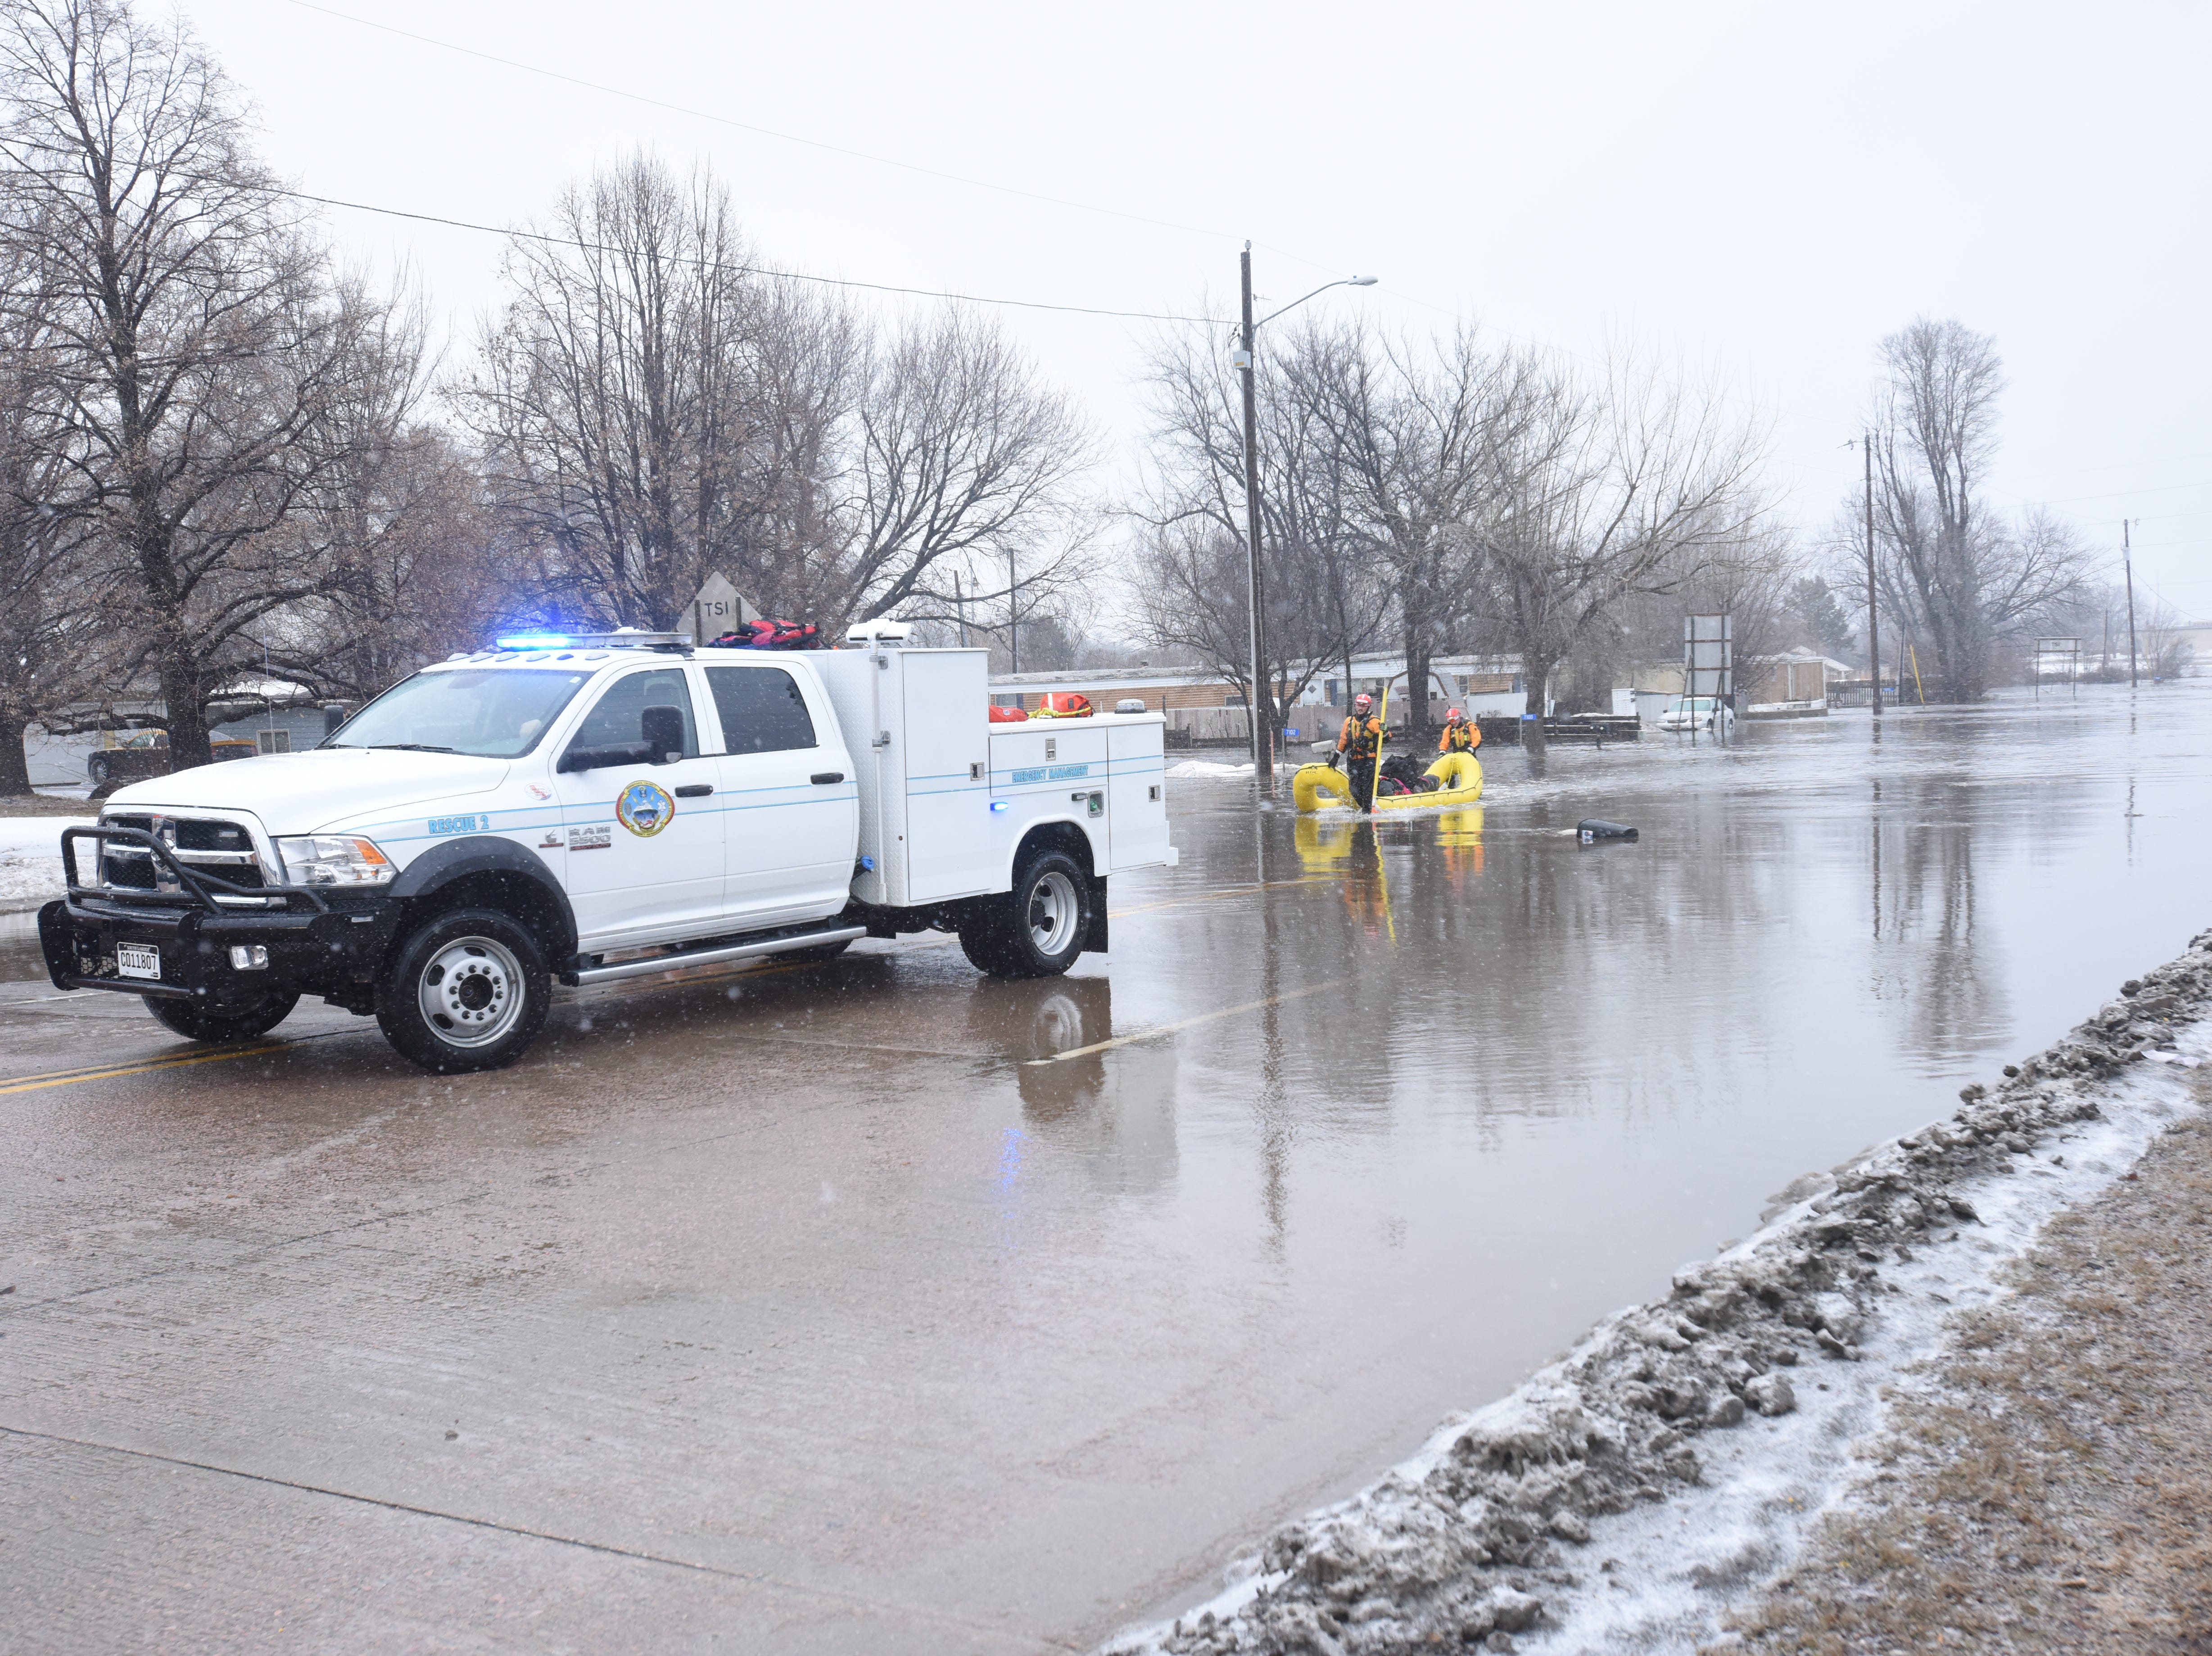 Minnehaha County Emergency Management, Sheriff's Office, Sioux Falls Fire Rescue, Hartford Fire and Paramedics Plus help evacuate people from their homes on W 12th St. across from Legacy Park Thursday, March 14, after roads flooded across the county.